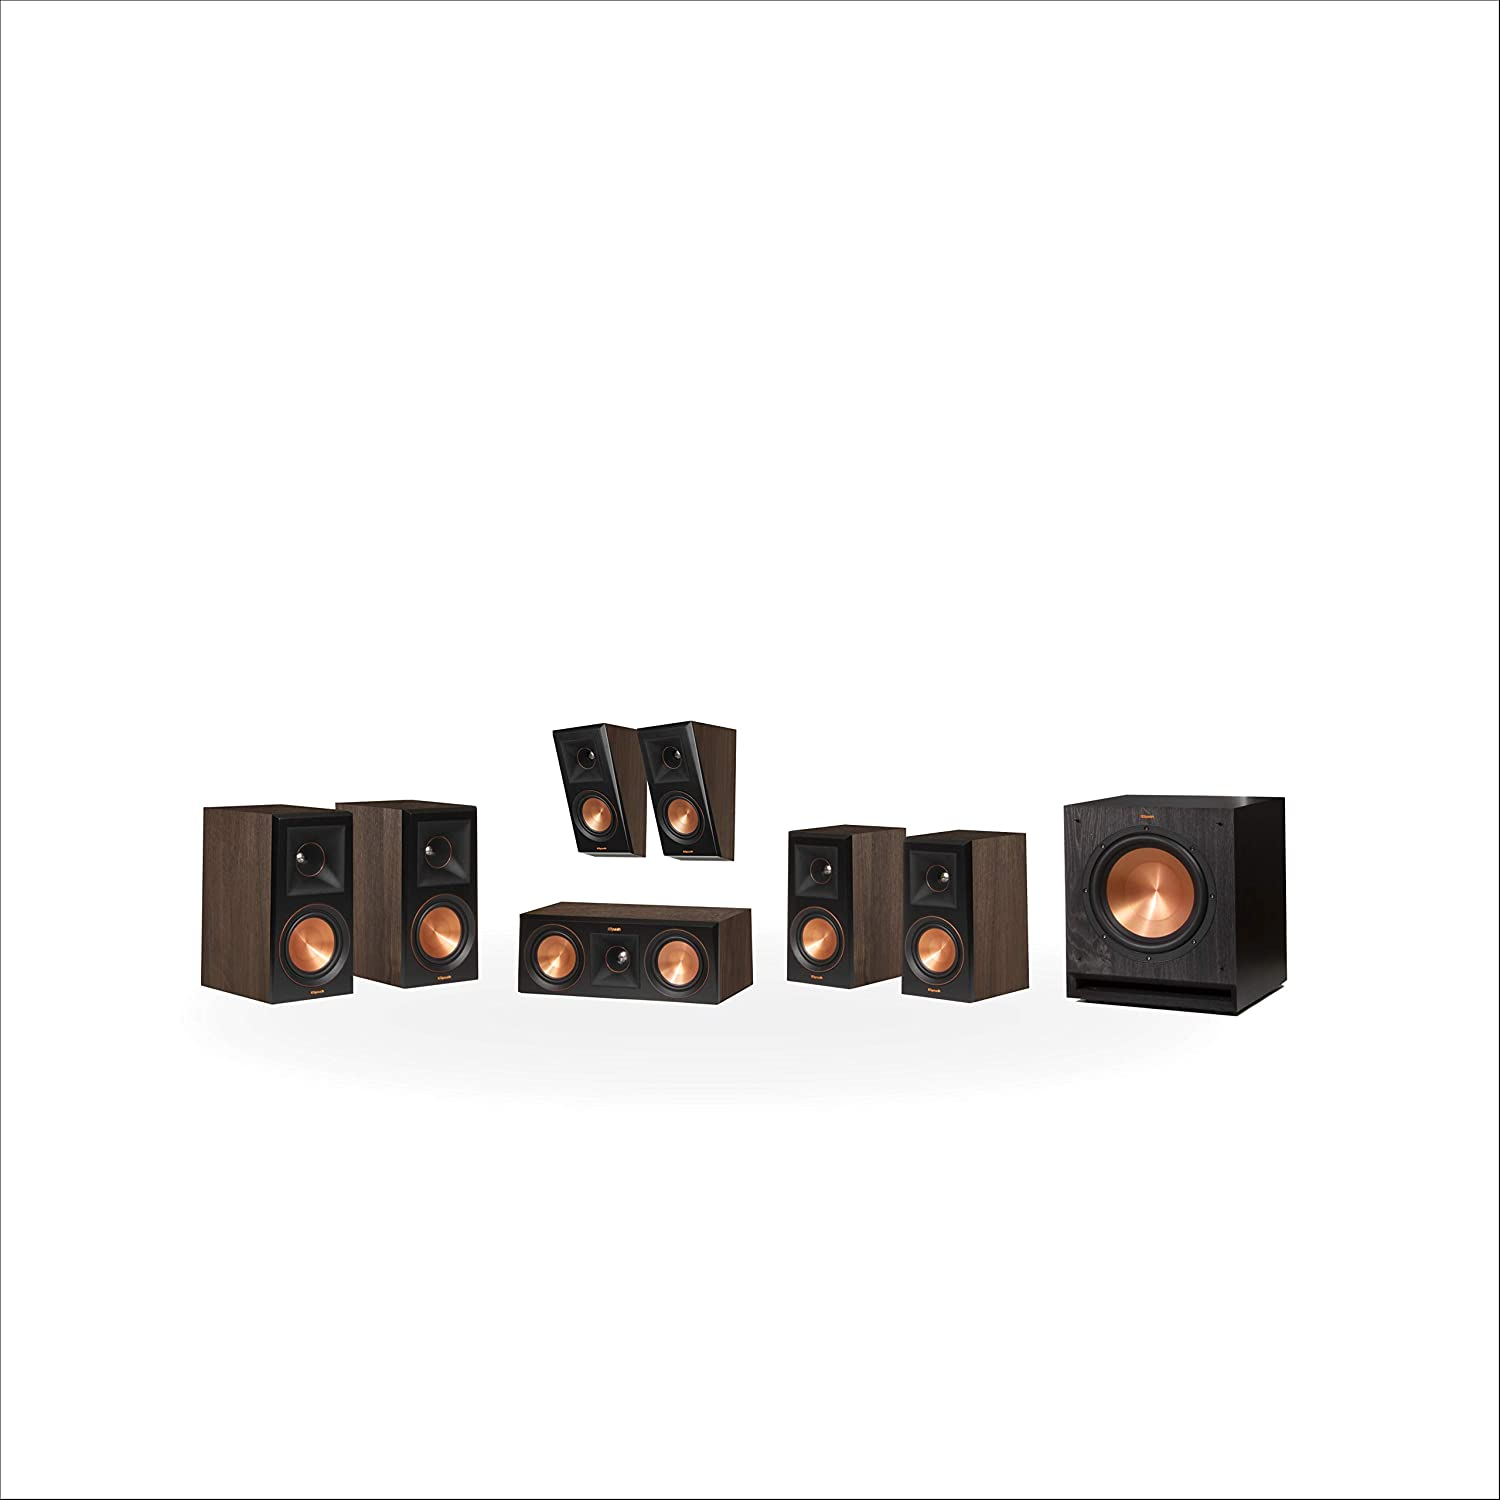 Klipsch RP-600M 5.1.2 Dolby Atmos Home Theater System - Walnut